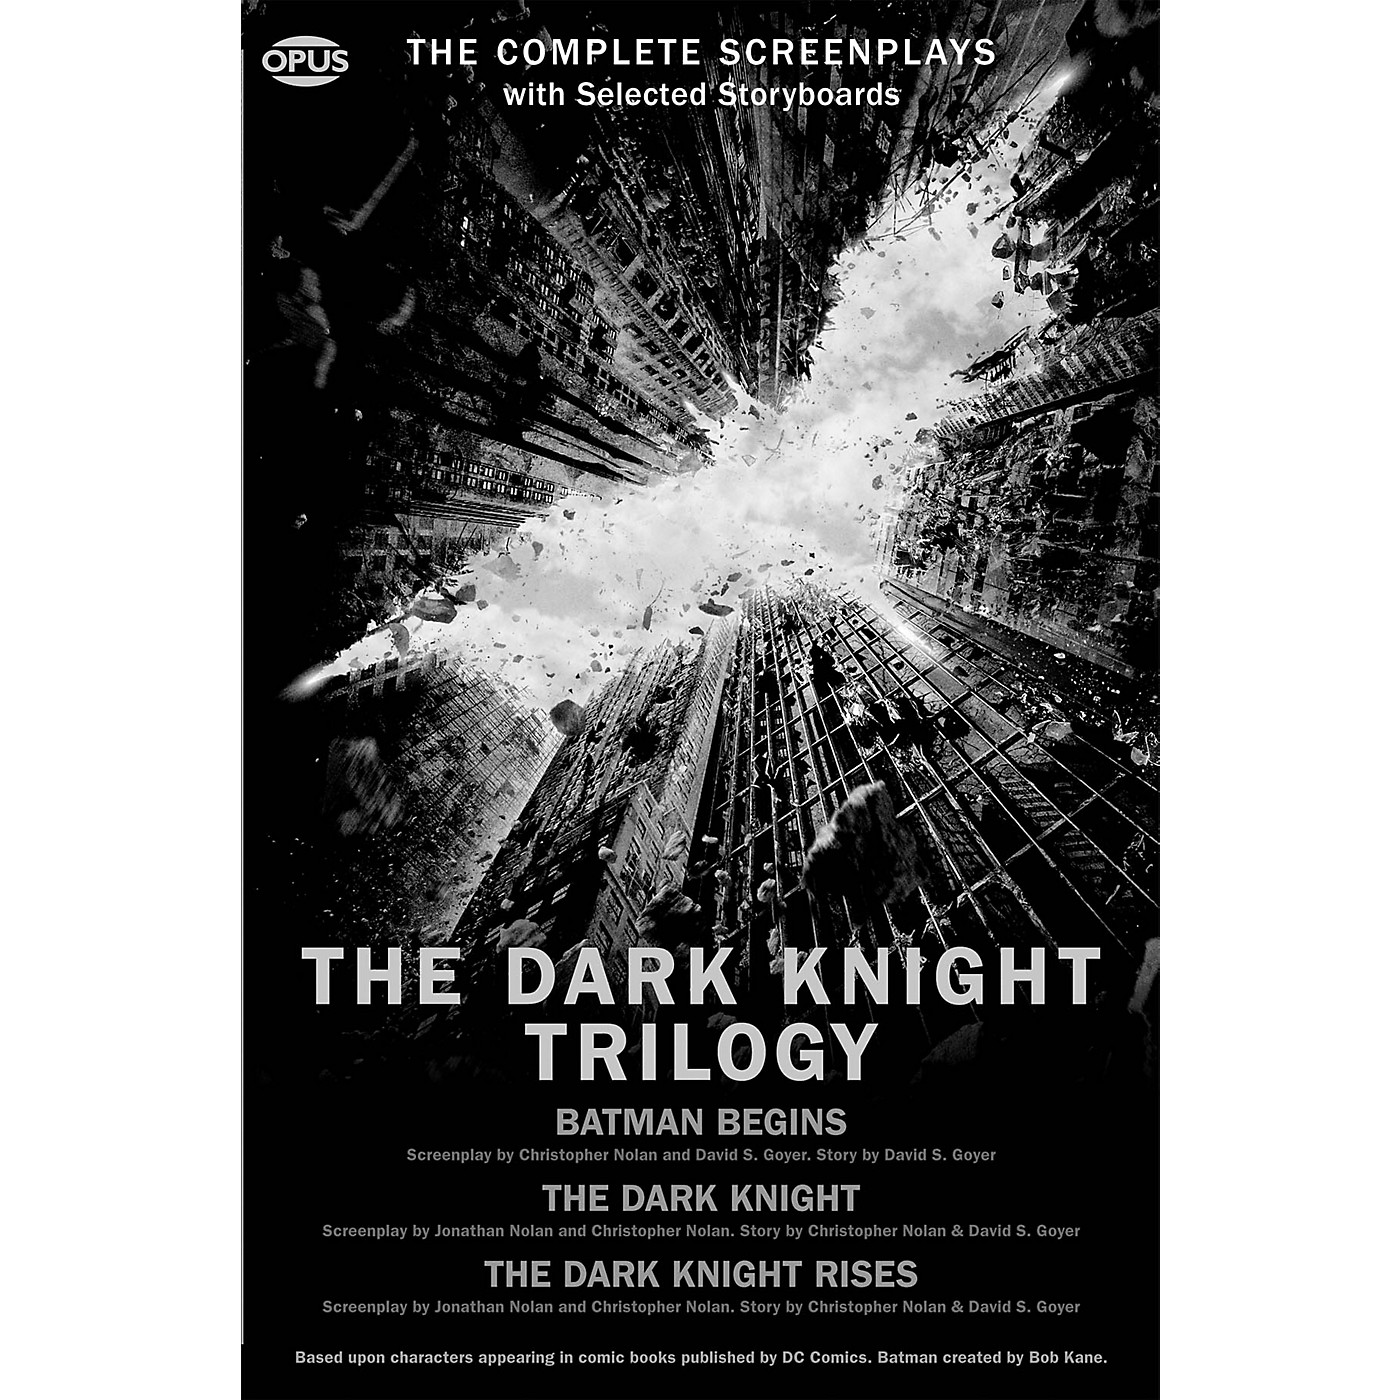 Opus The Dark Knight Trilogy (The Complete Screenplays) Book Series Softcover Written by Christopher Nolan thumbnail